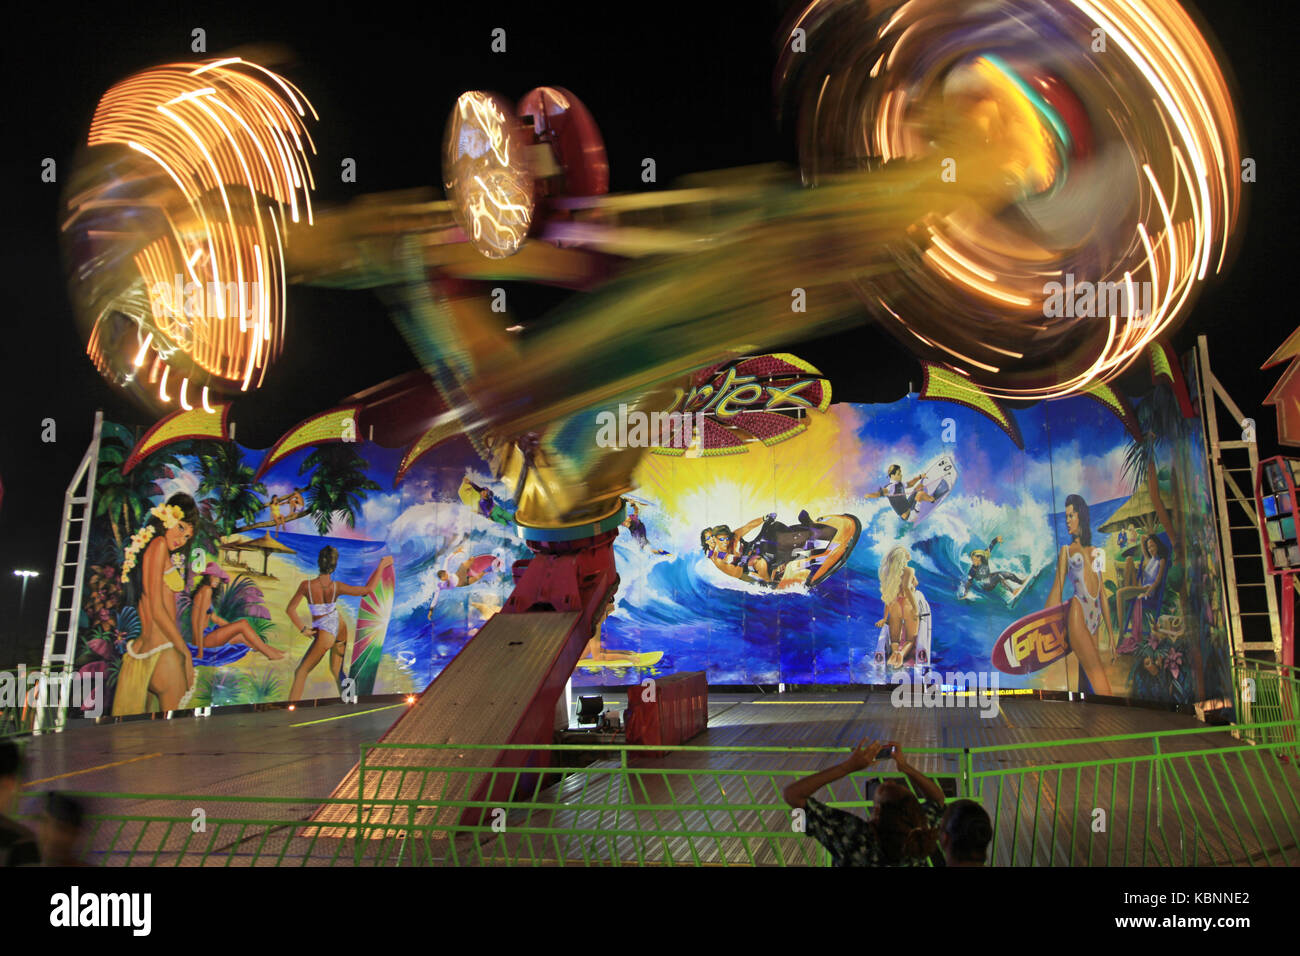 A thrill ride spins and turns at night - Stock Image